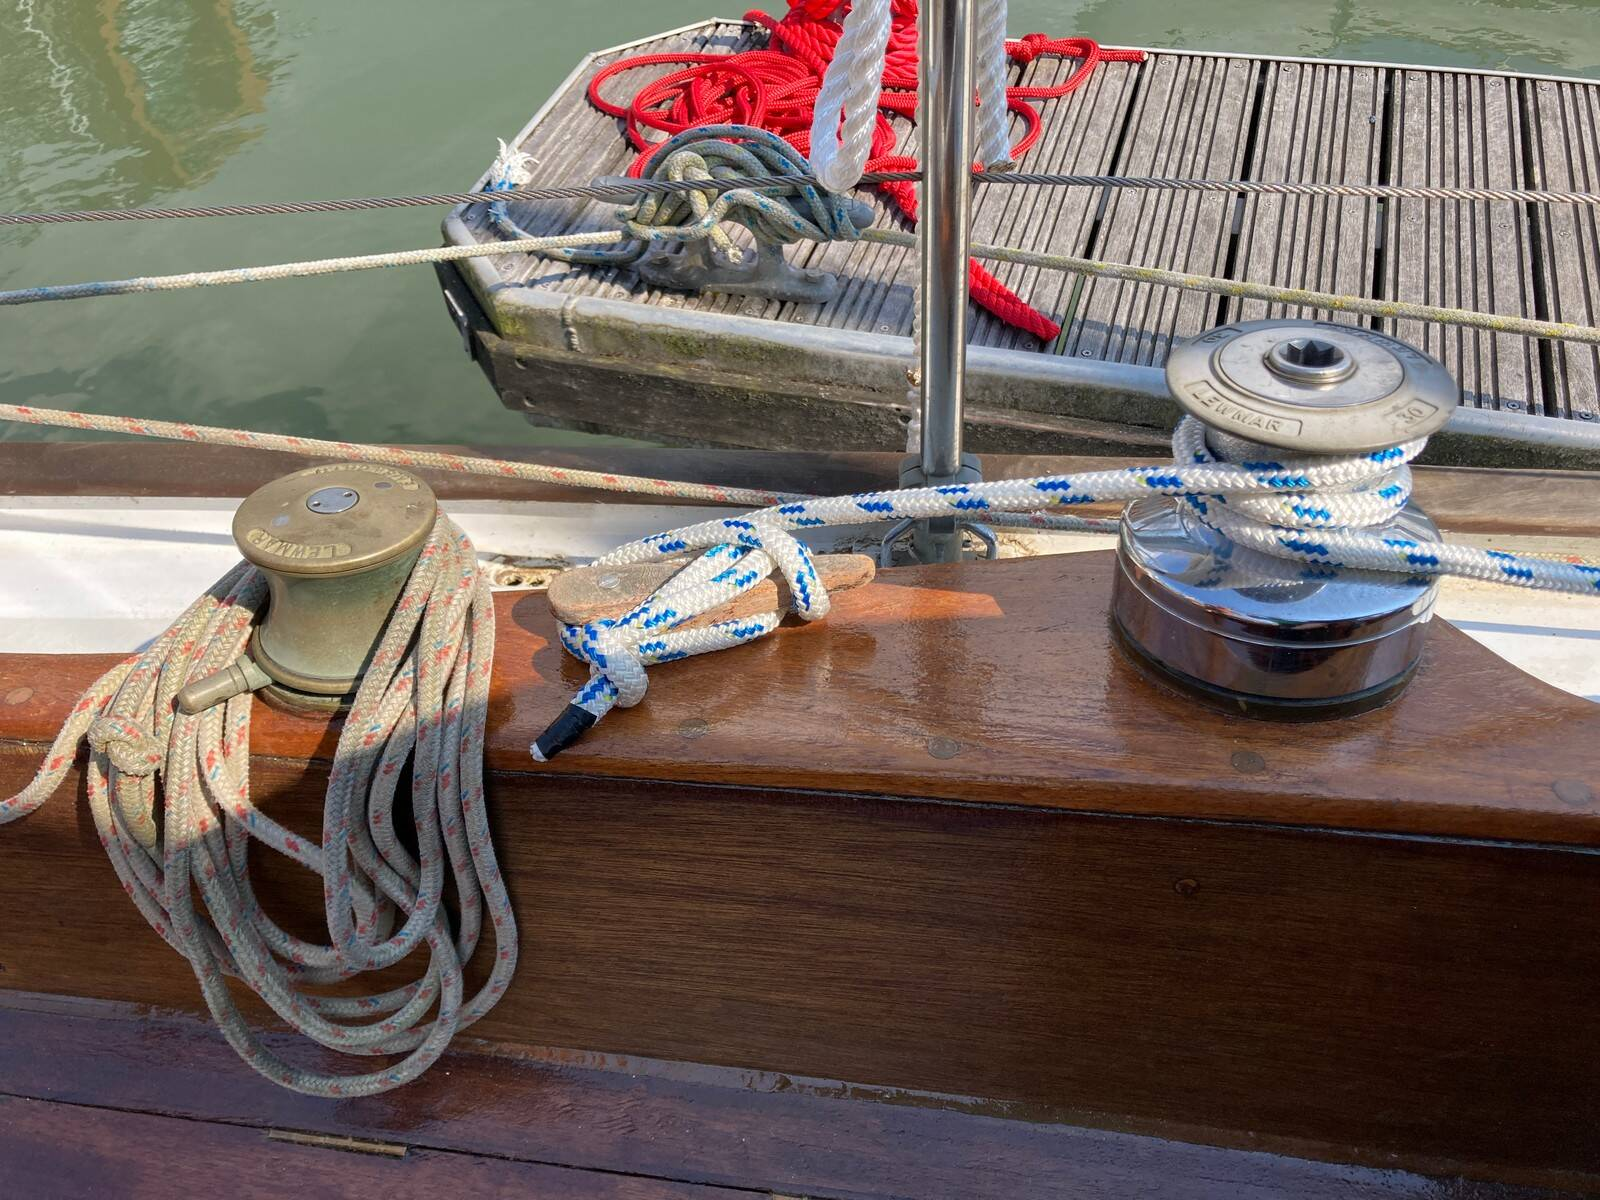 Twister 28 winches